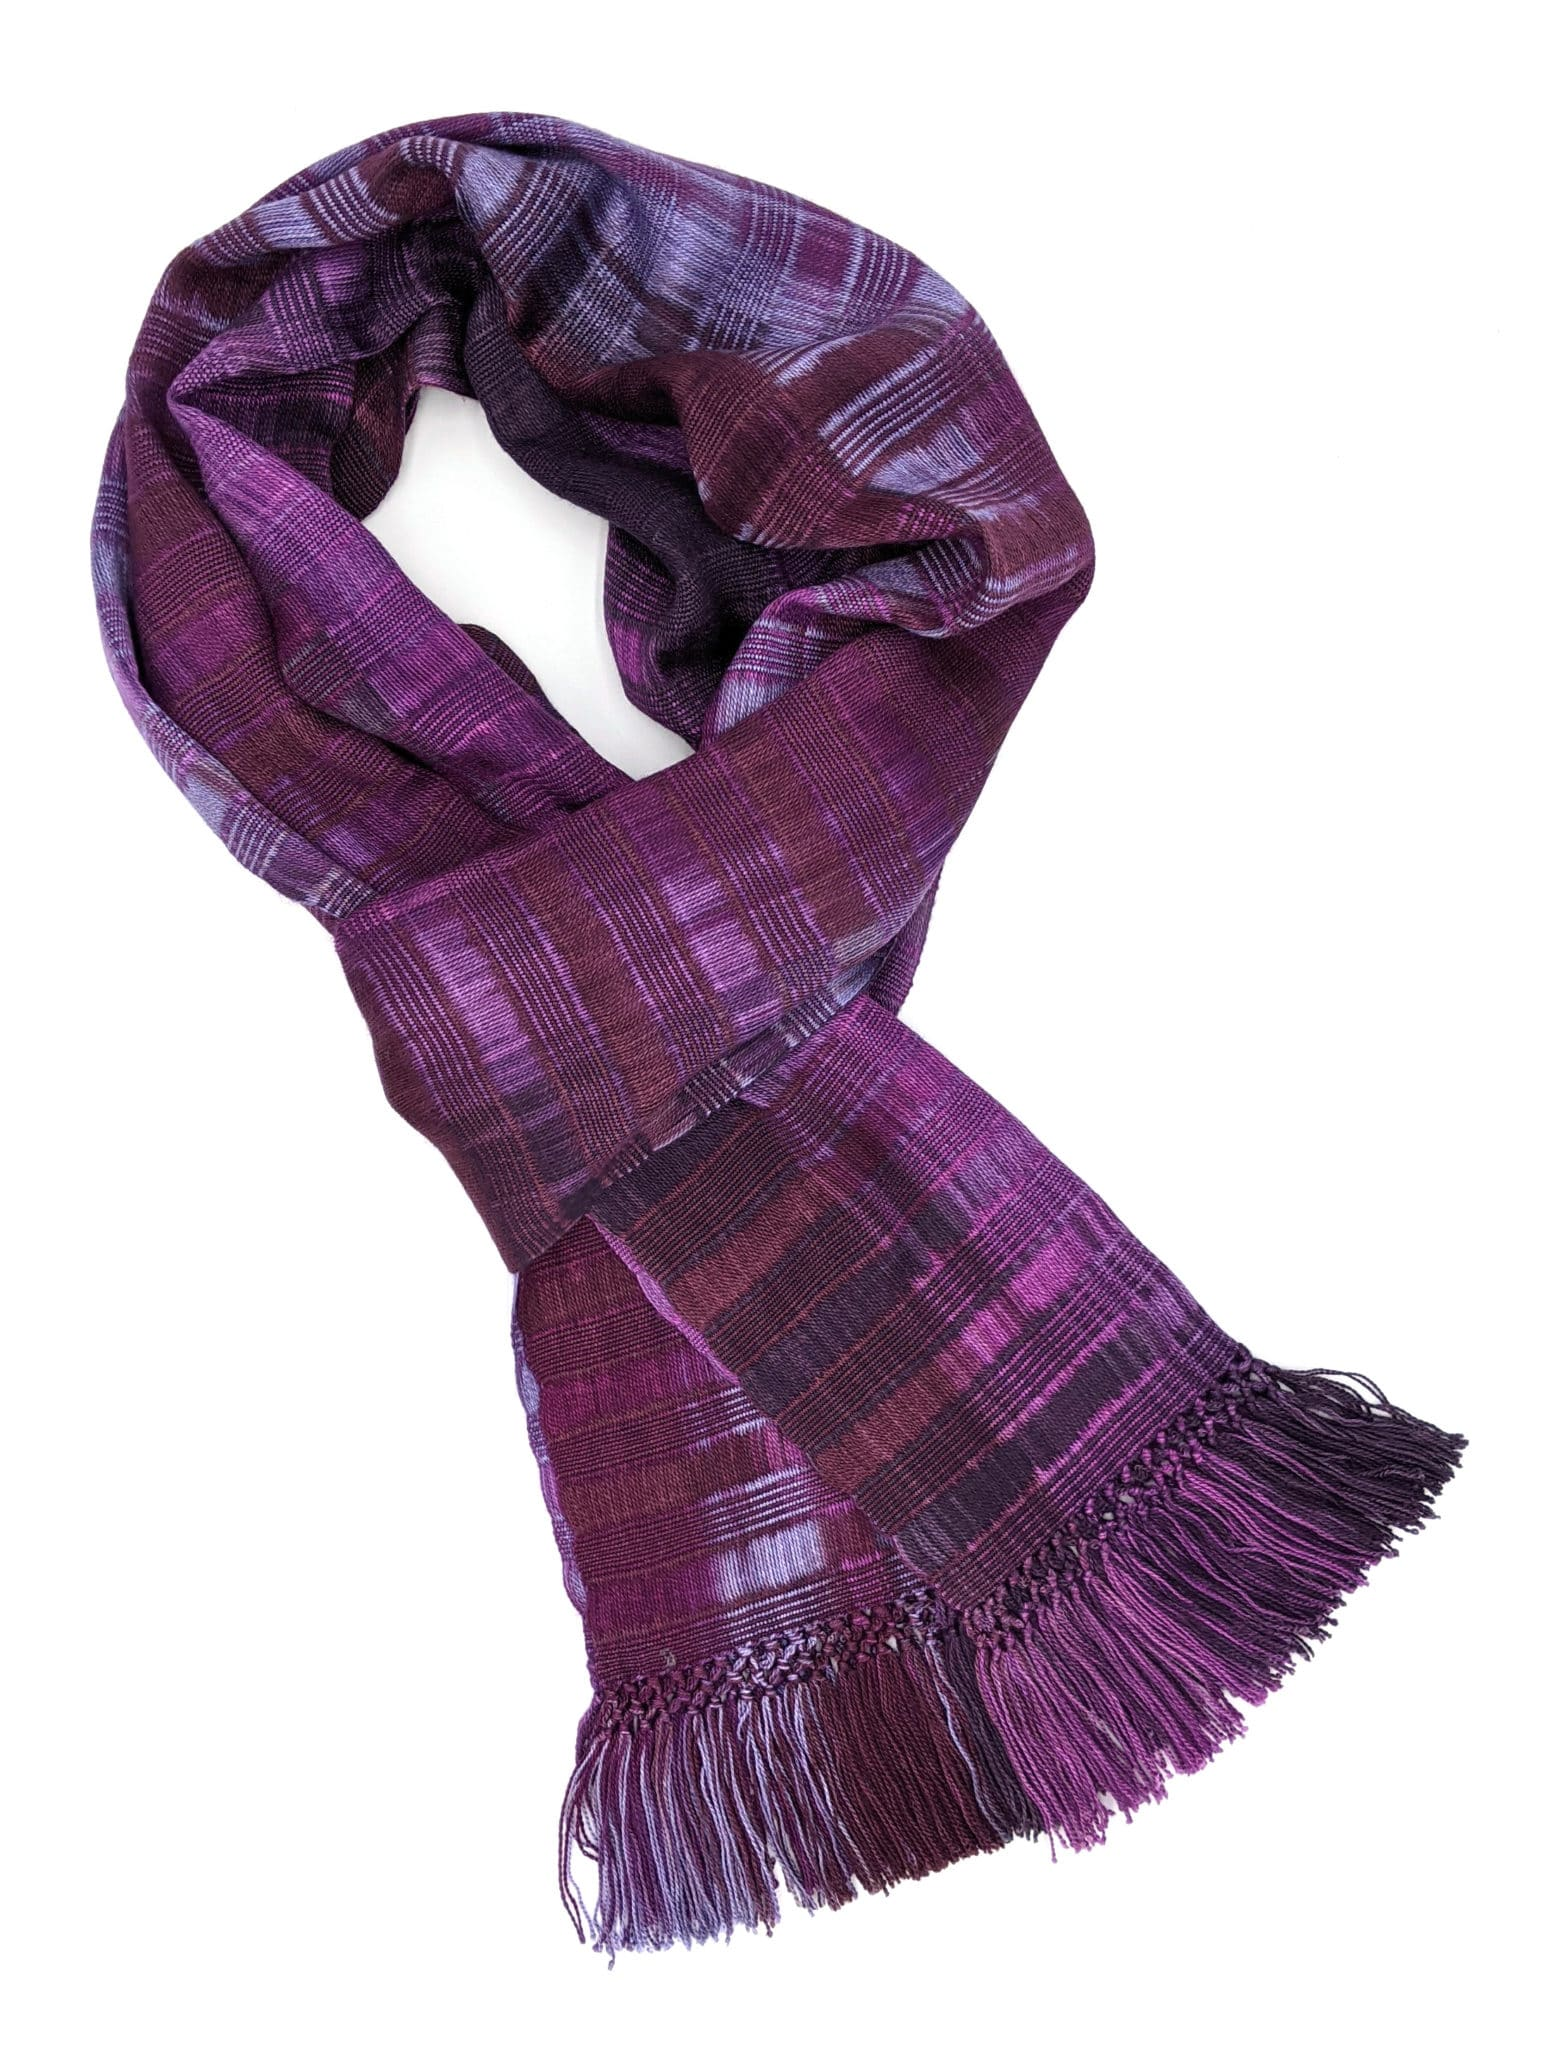 Purples, Lilac, Violet - Lightweight Bamboo Open-Weave Handwoven Scarf 8 x 68